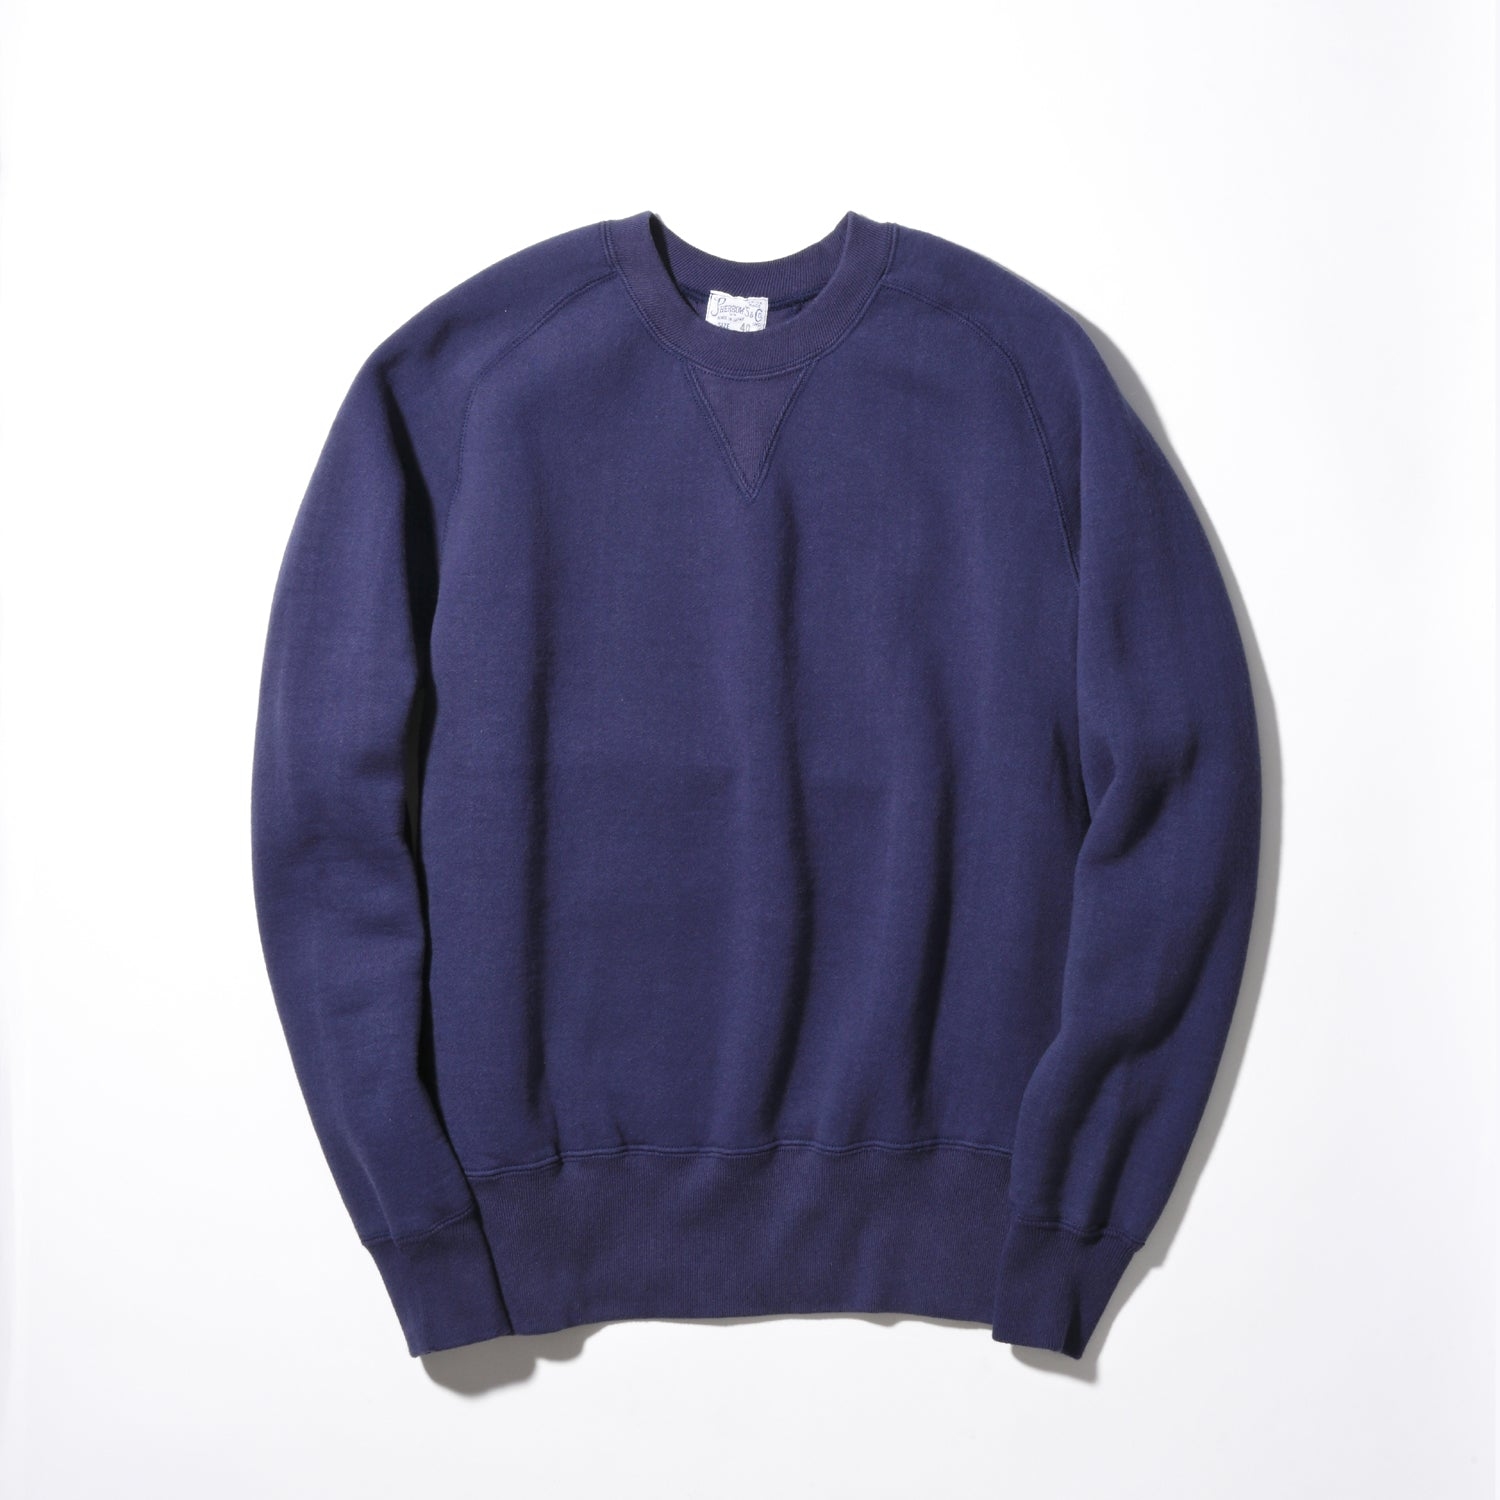 Freedom Sleeve Tsuri-Ami Loopwheel Crewneck Sweatshirt PS100 in Navy